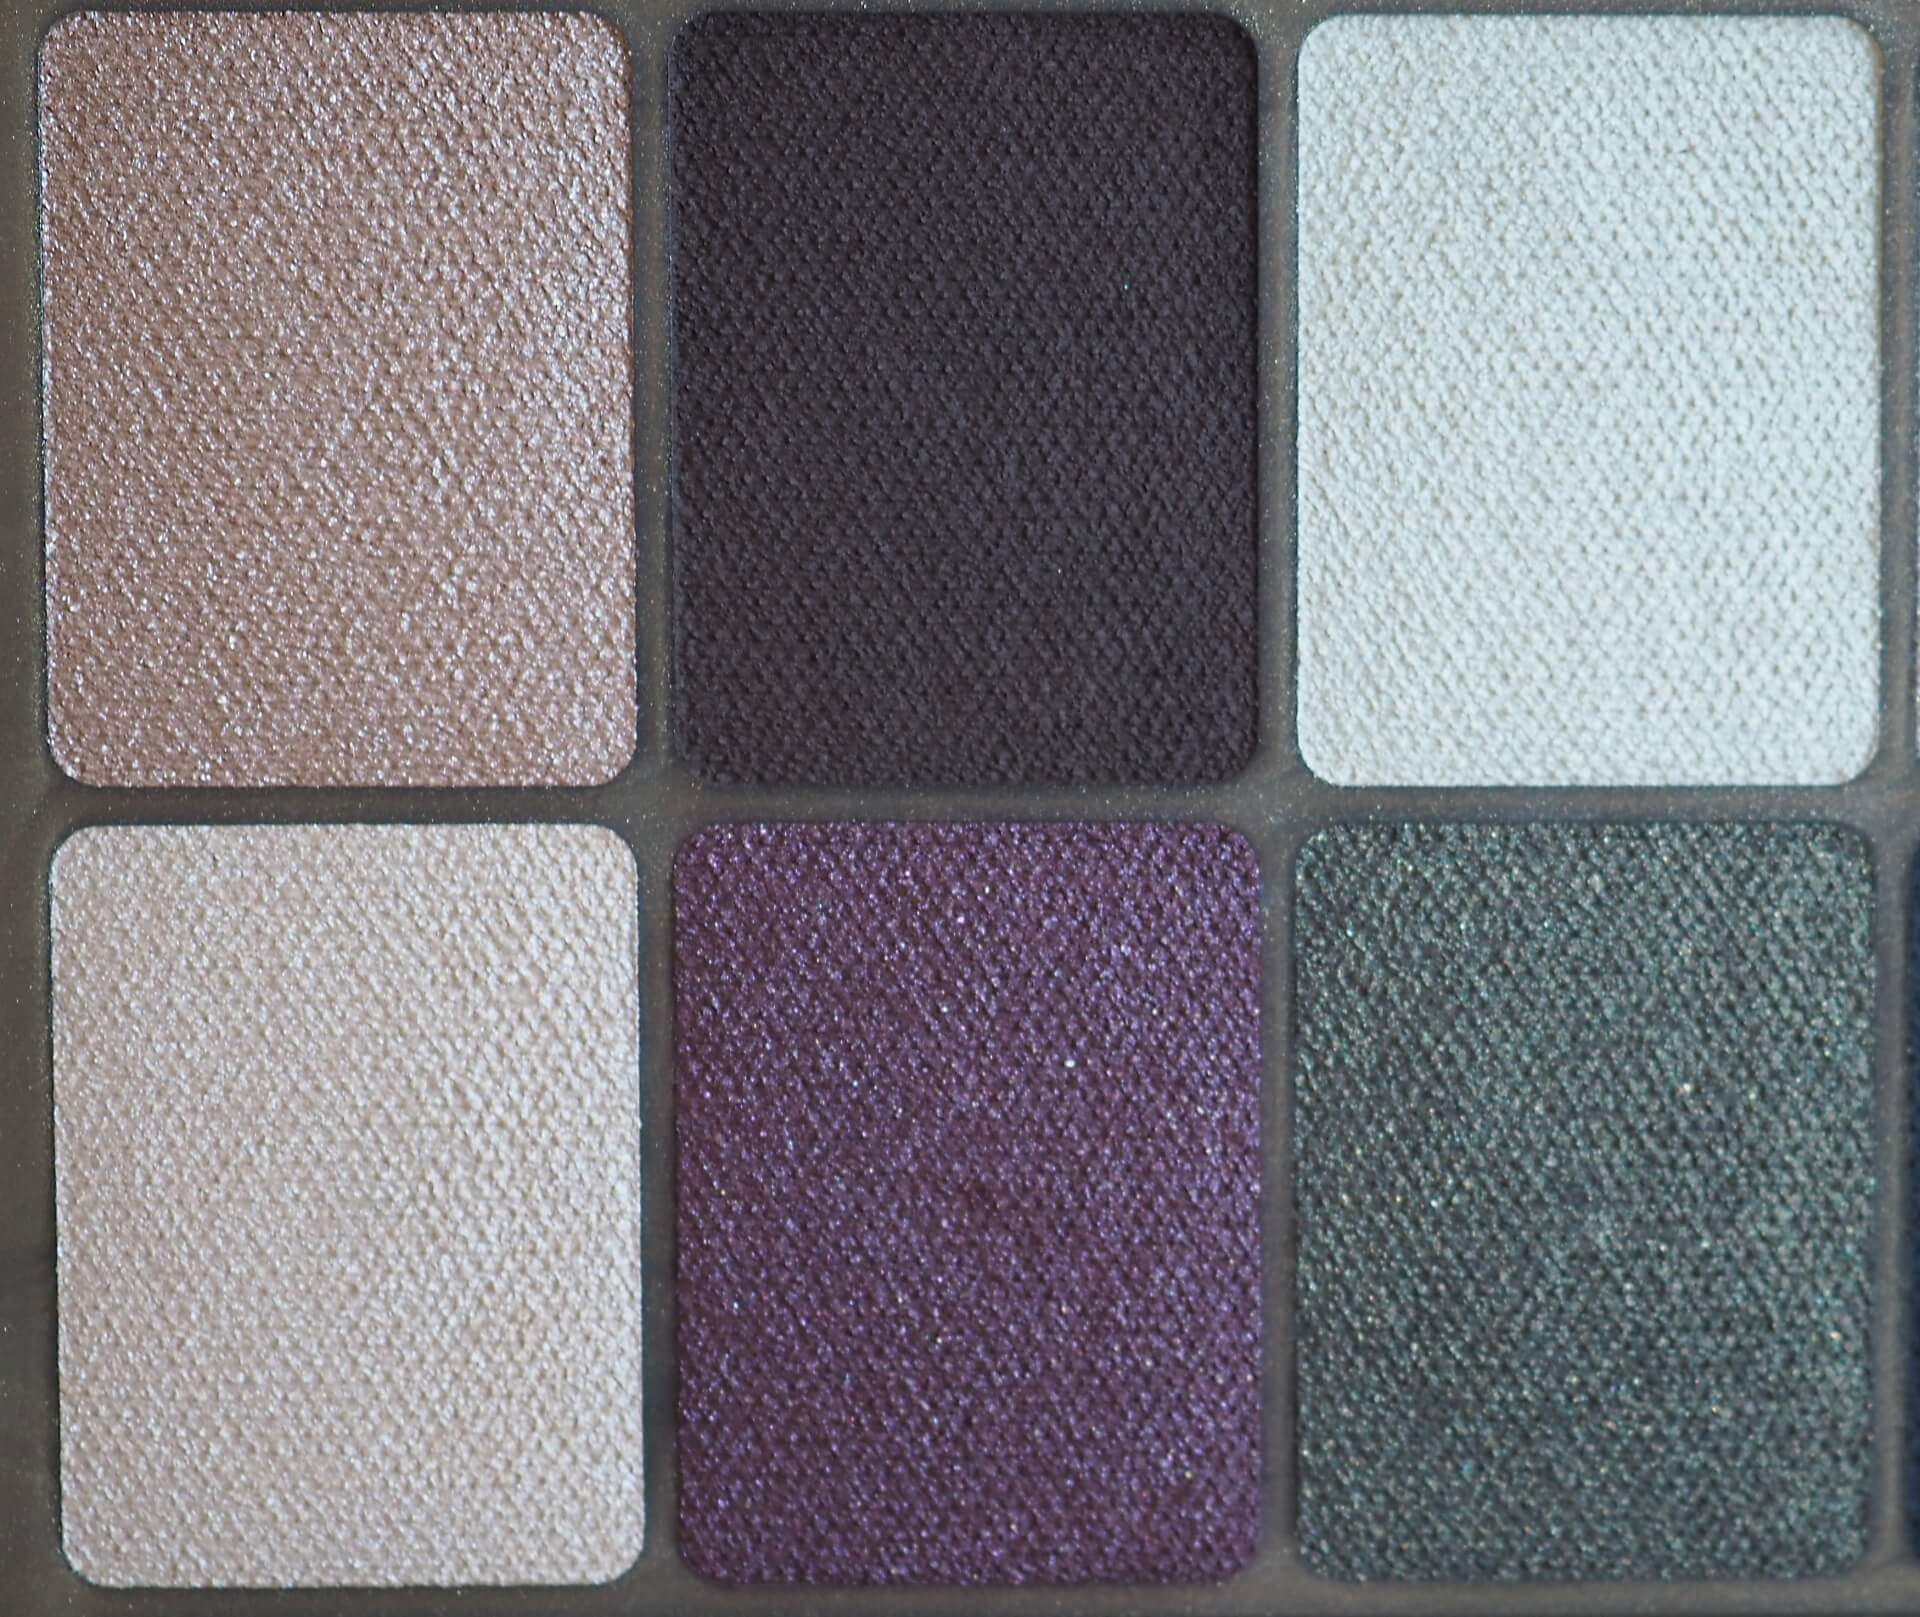 Maybelline The 24 Karat Nudes Eyeshadow Palette